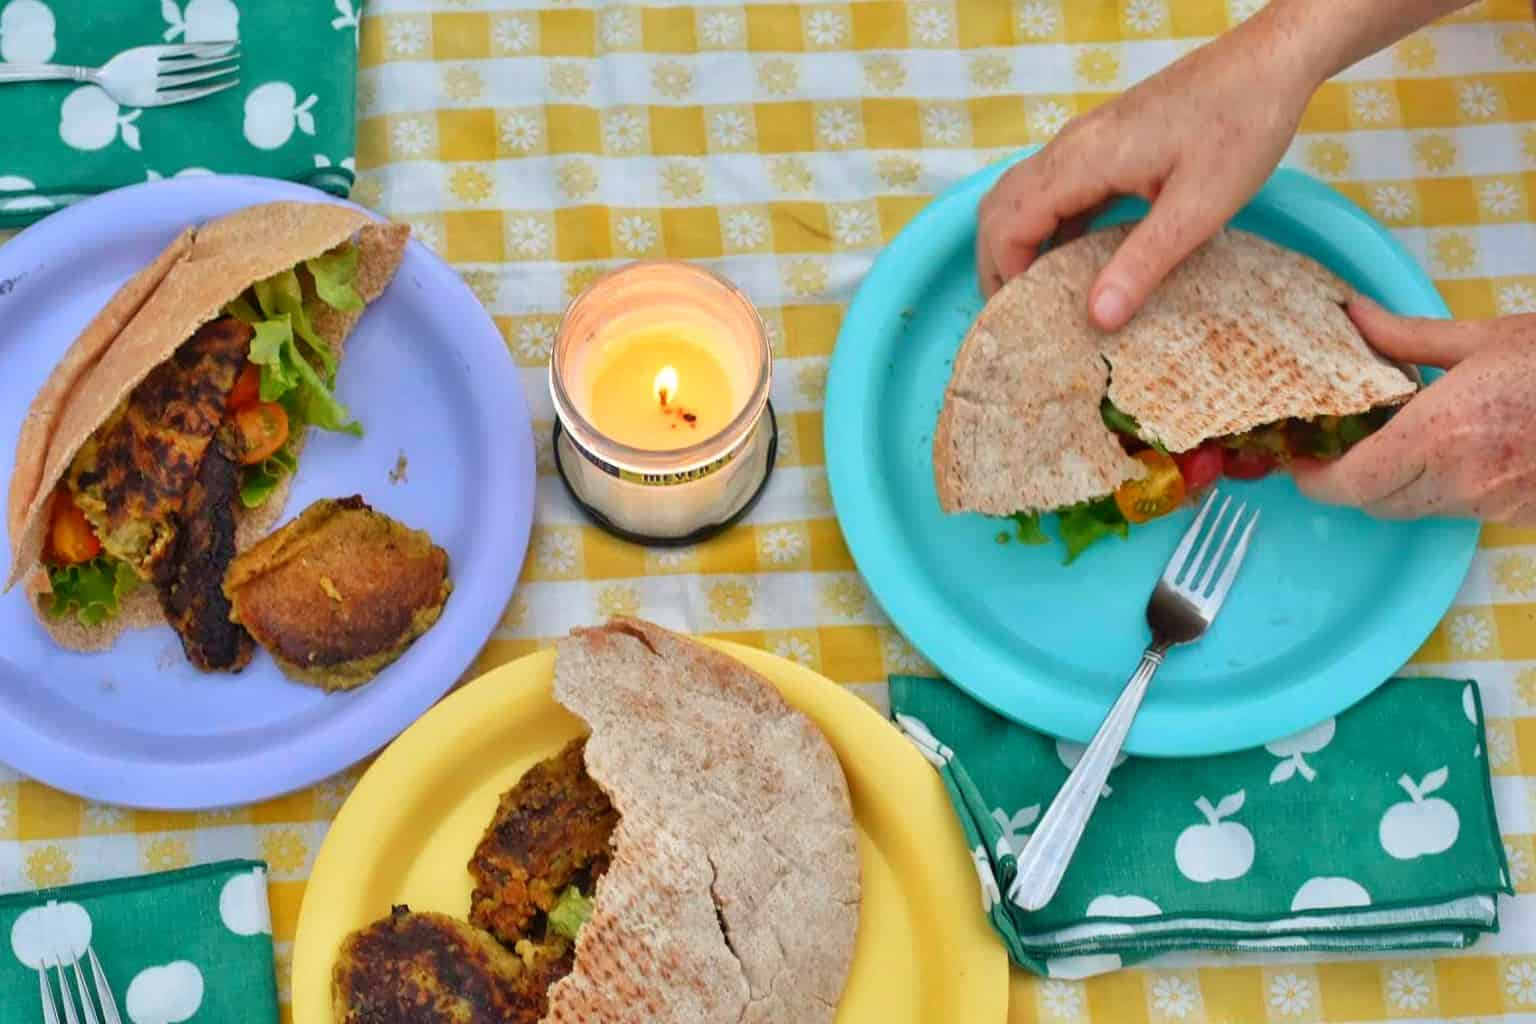 A close up of some camping food on a yellow checked tablecloth.